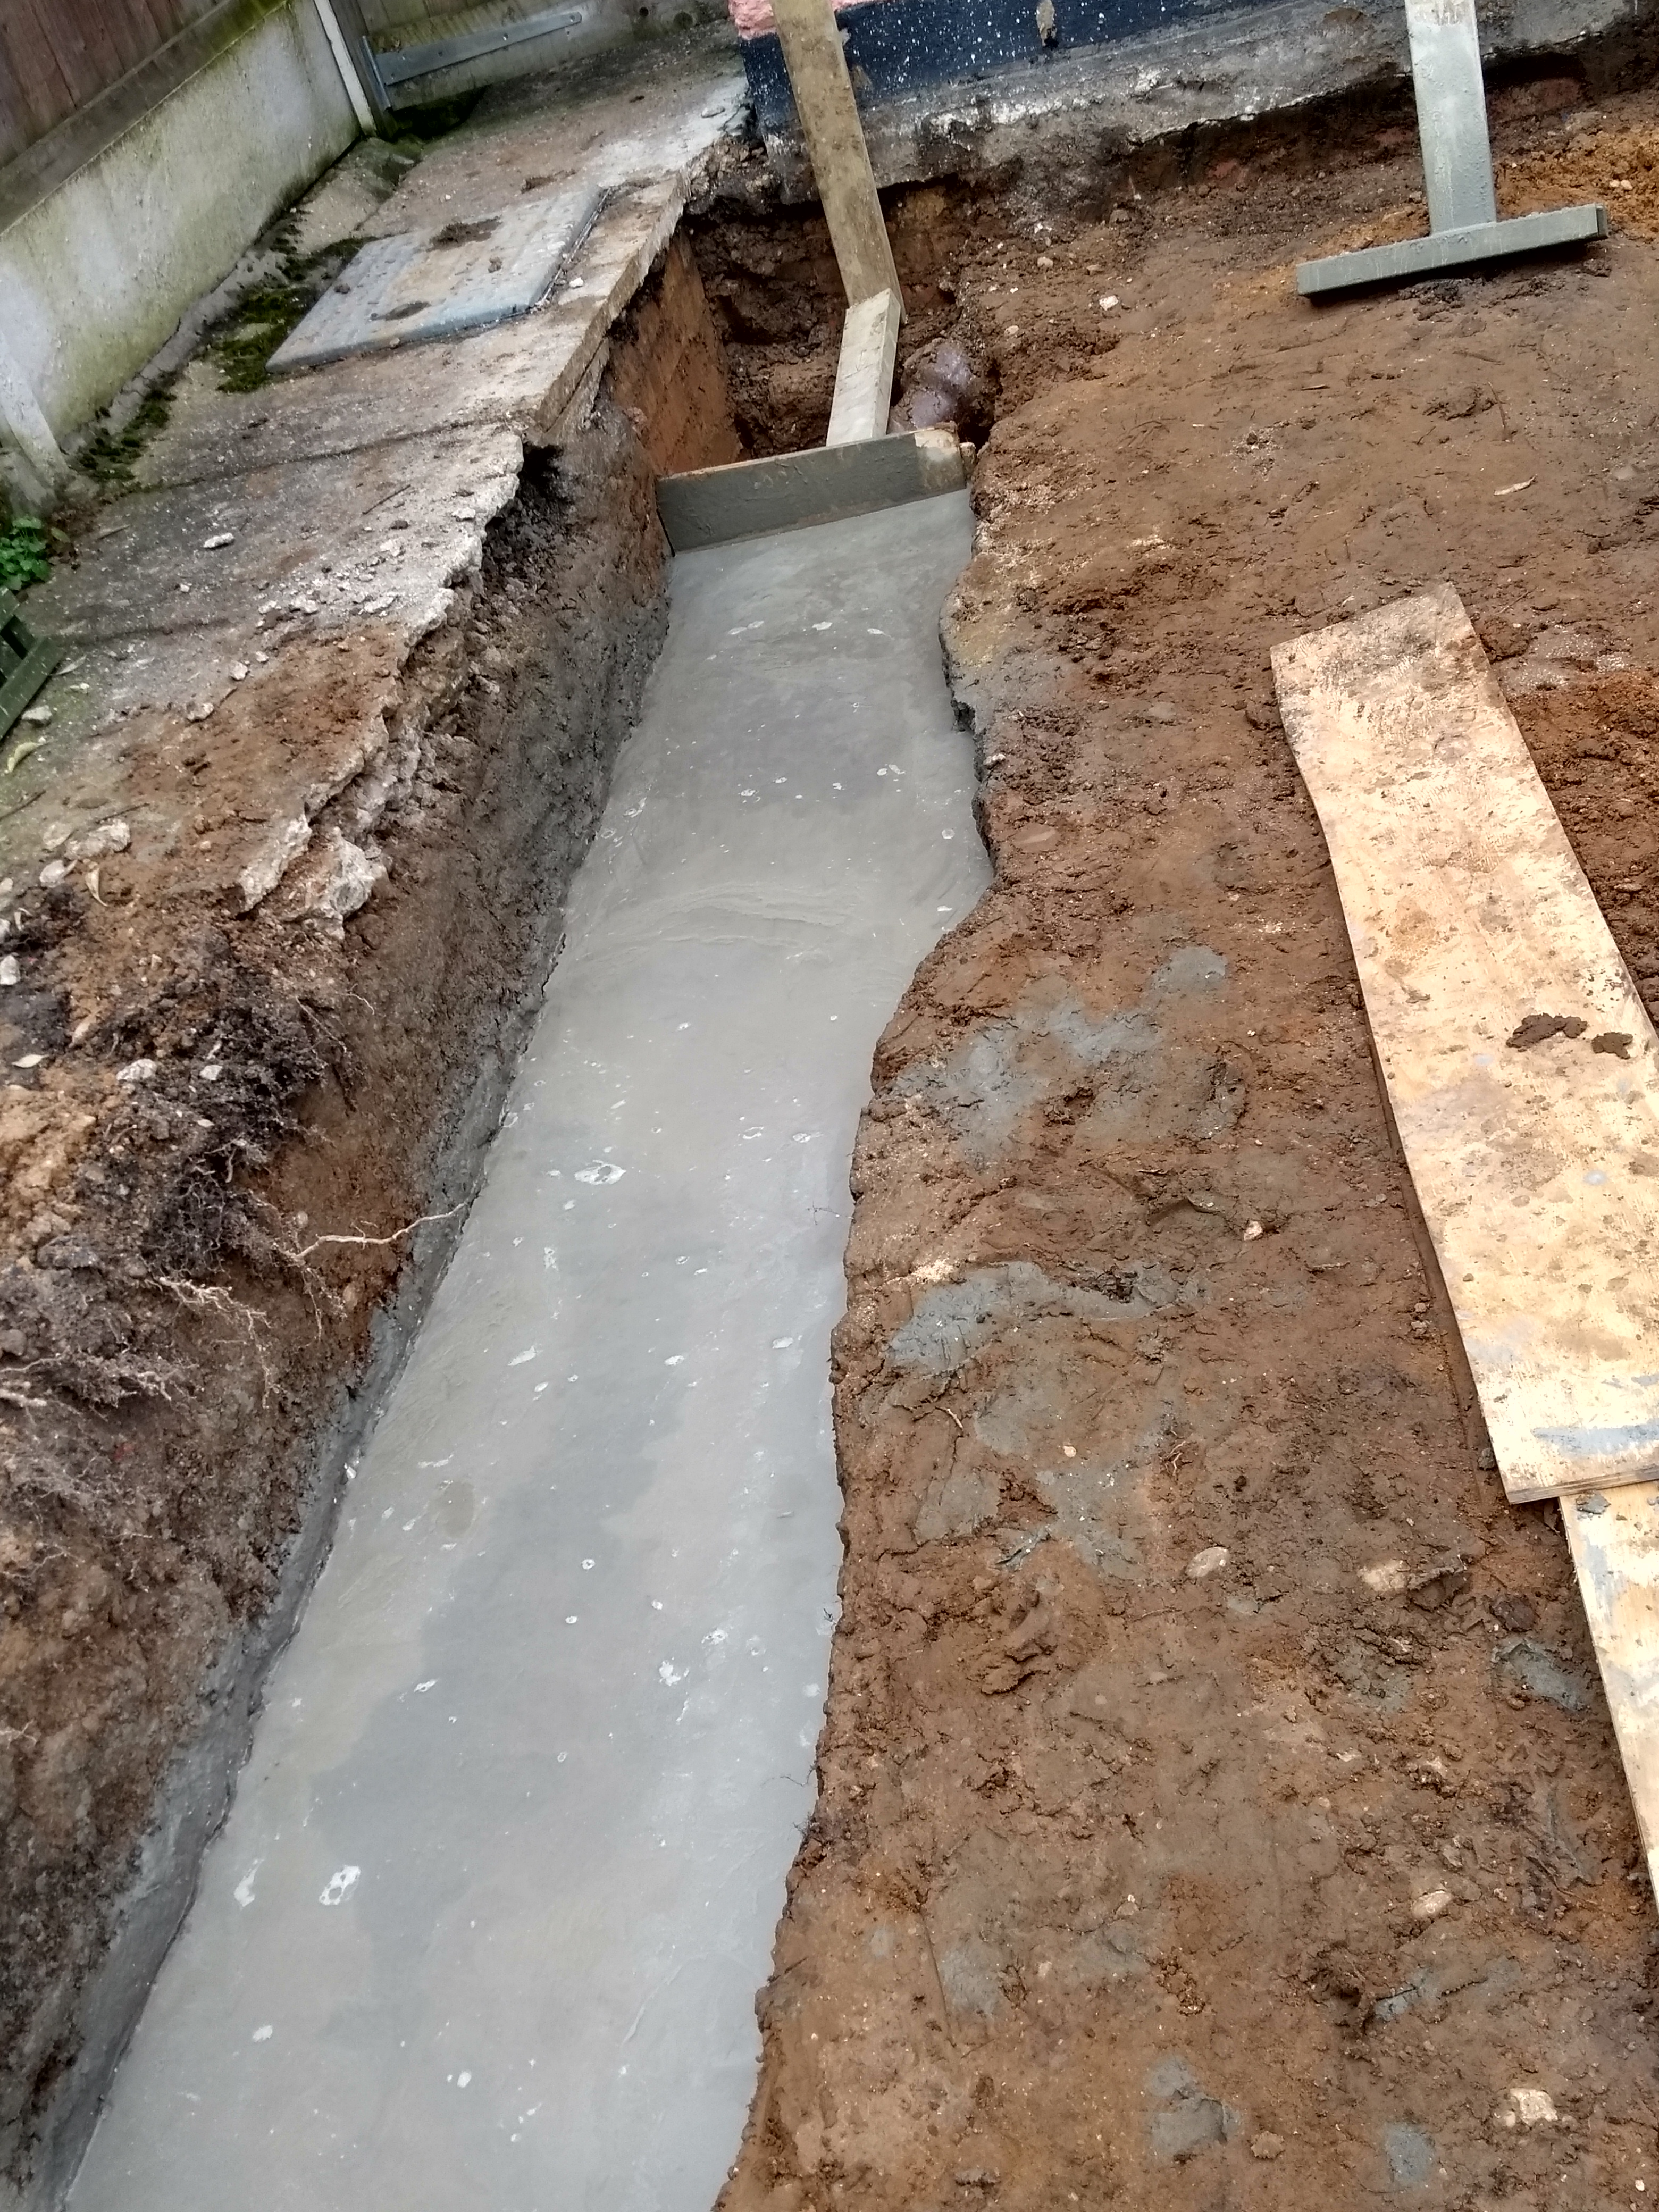 smooth concrete in foundation trench